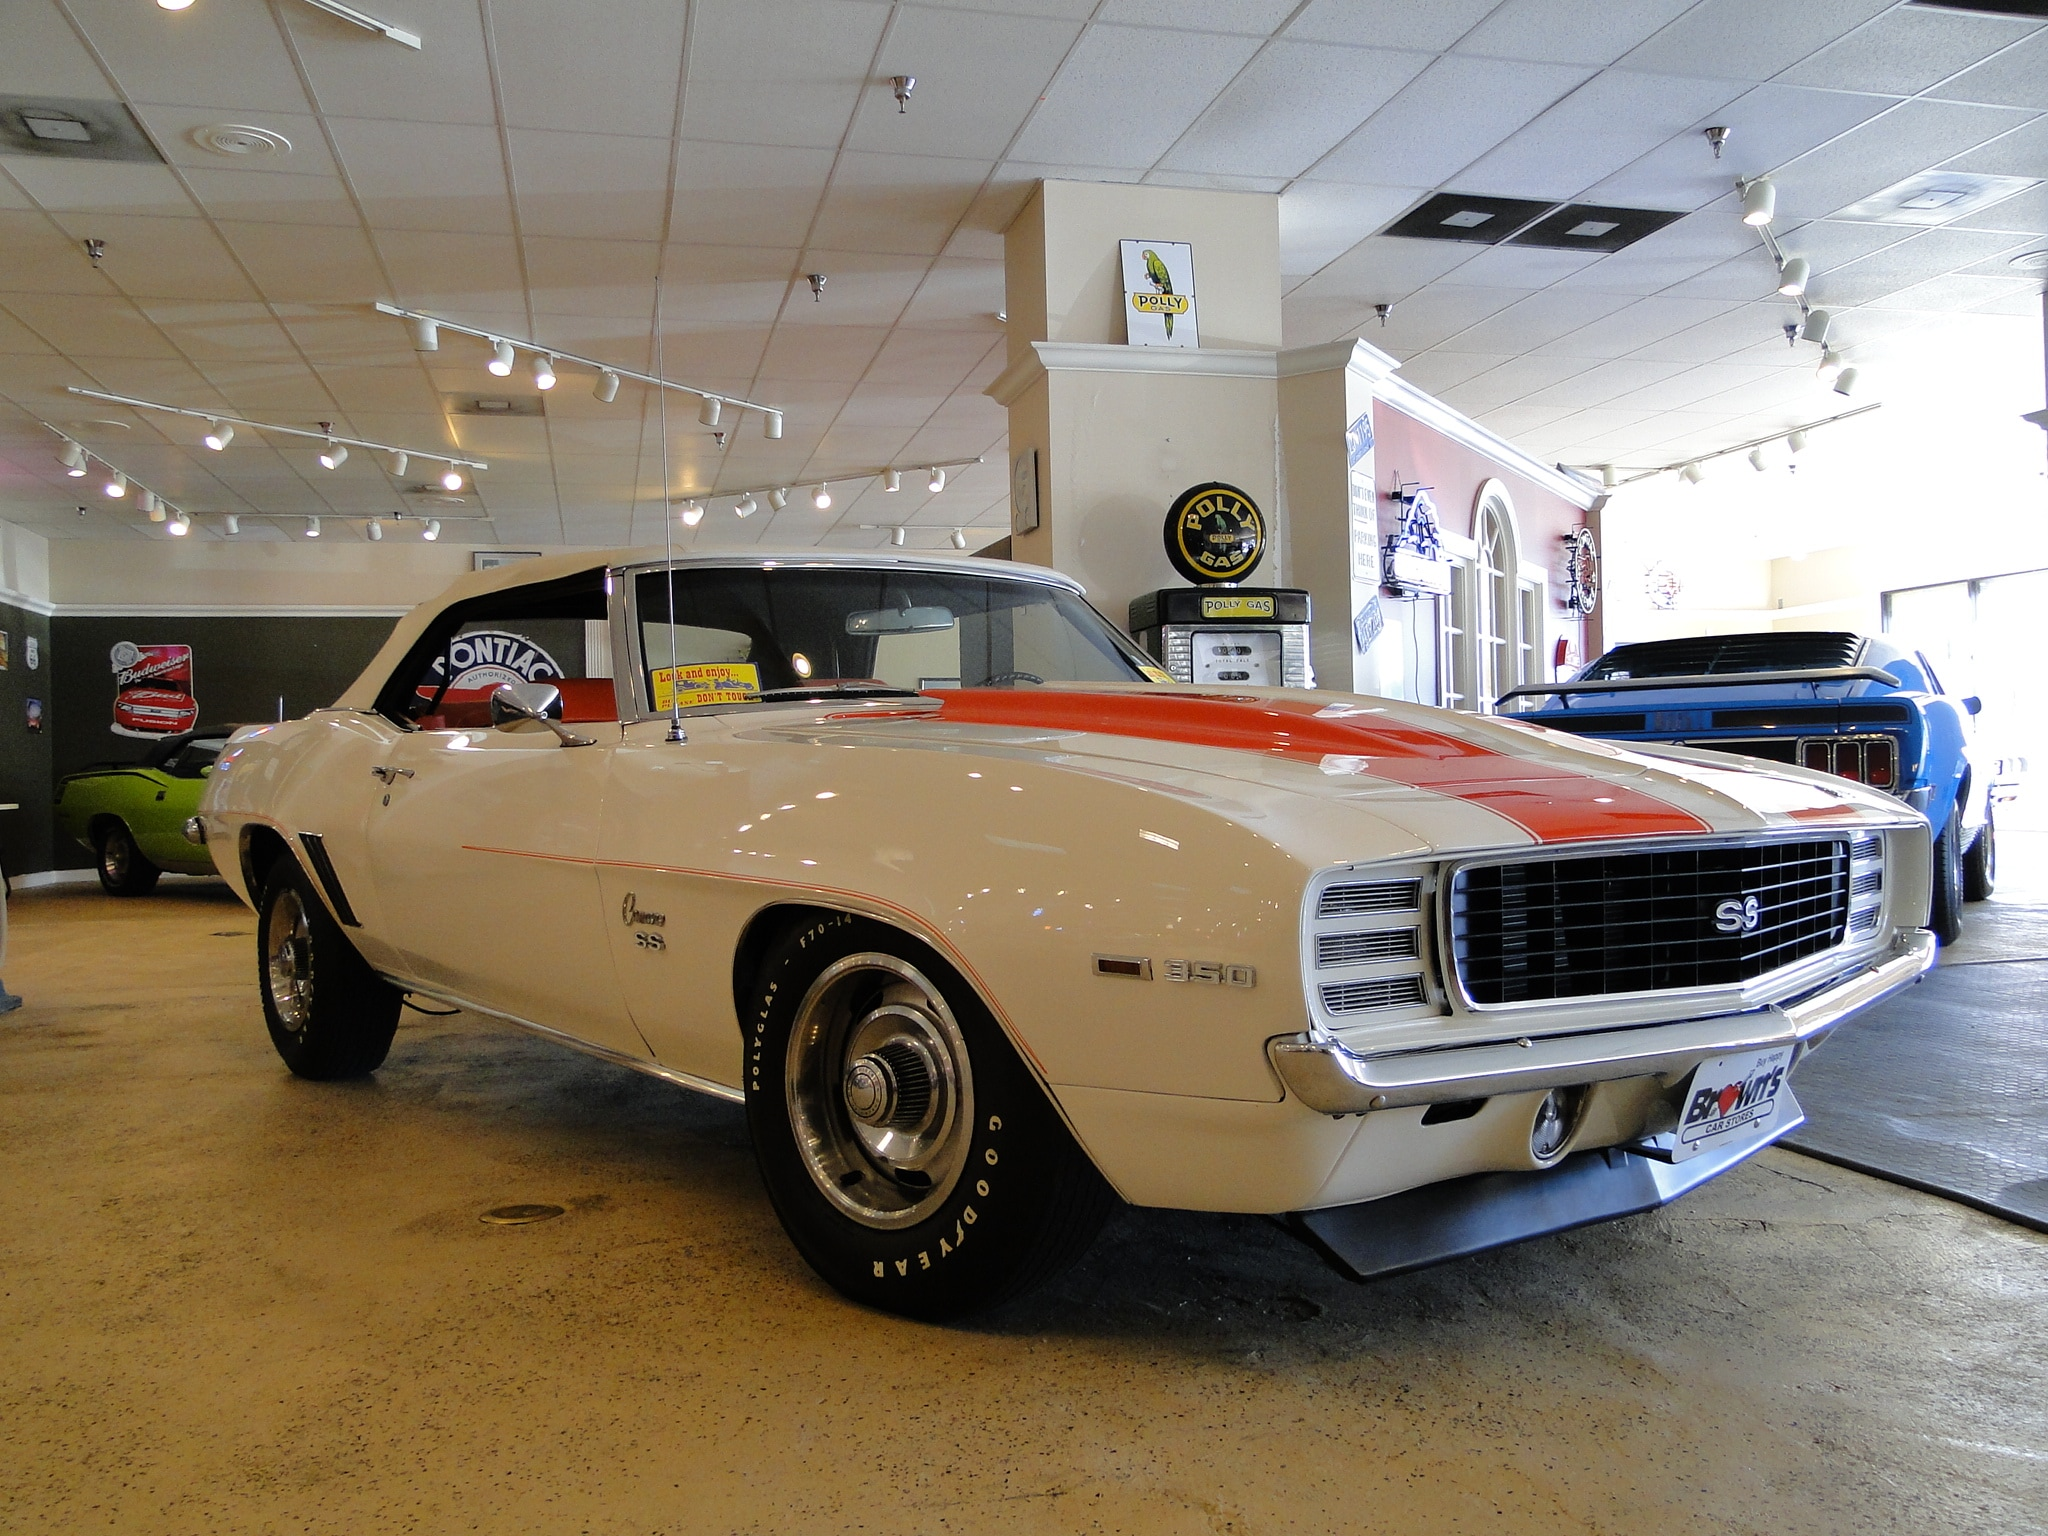 1969 Chevrolet Camaro RS/SS Indy Pace Car Convertible Convertible